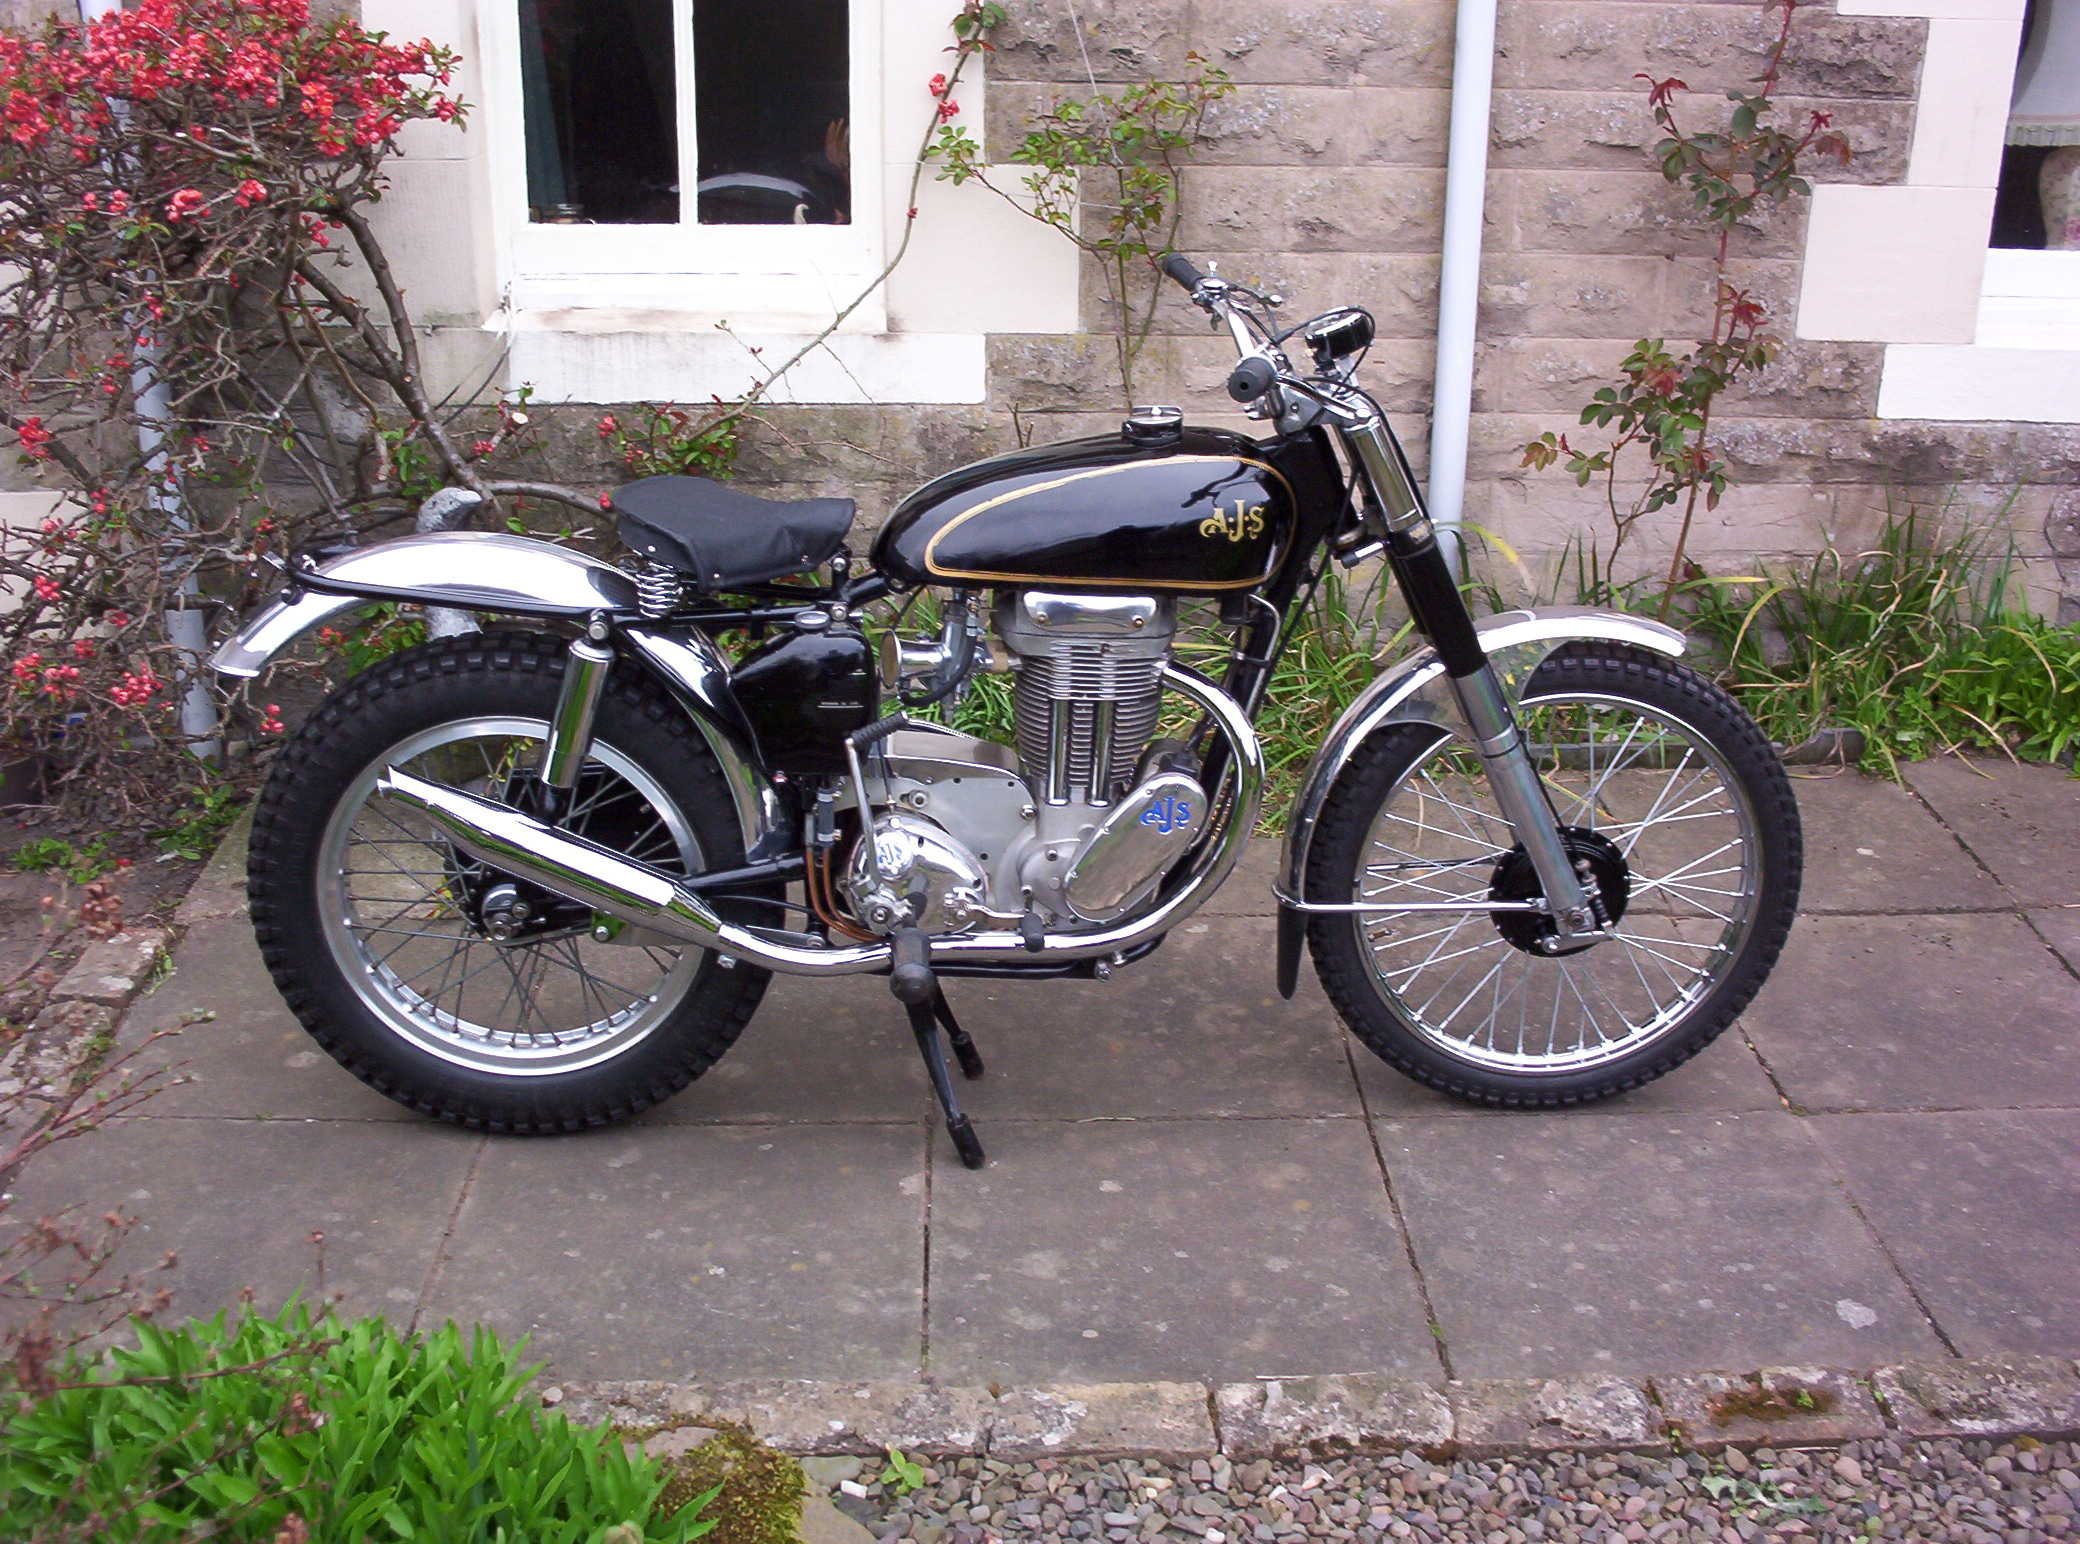 Matchless g 11 csr for sale 1958 on car and classic uk c544589 - 1956 Matchless G80cs Classic Vintage Motorcycle British Motorbike Matchless Custom Motorcycles Motorbikes Pinterest Vintage Motorcycles